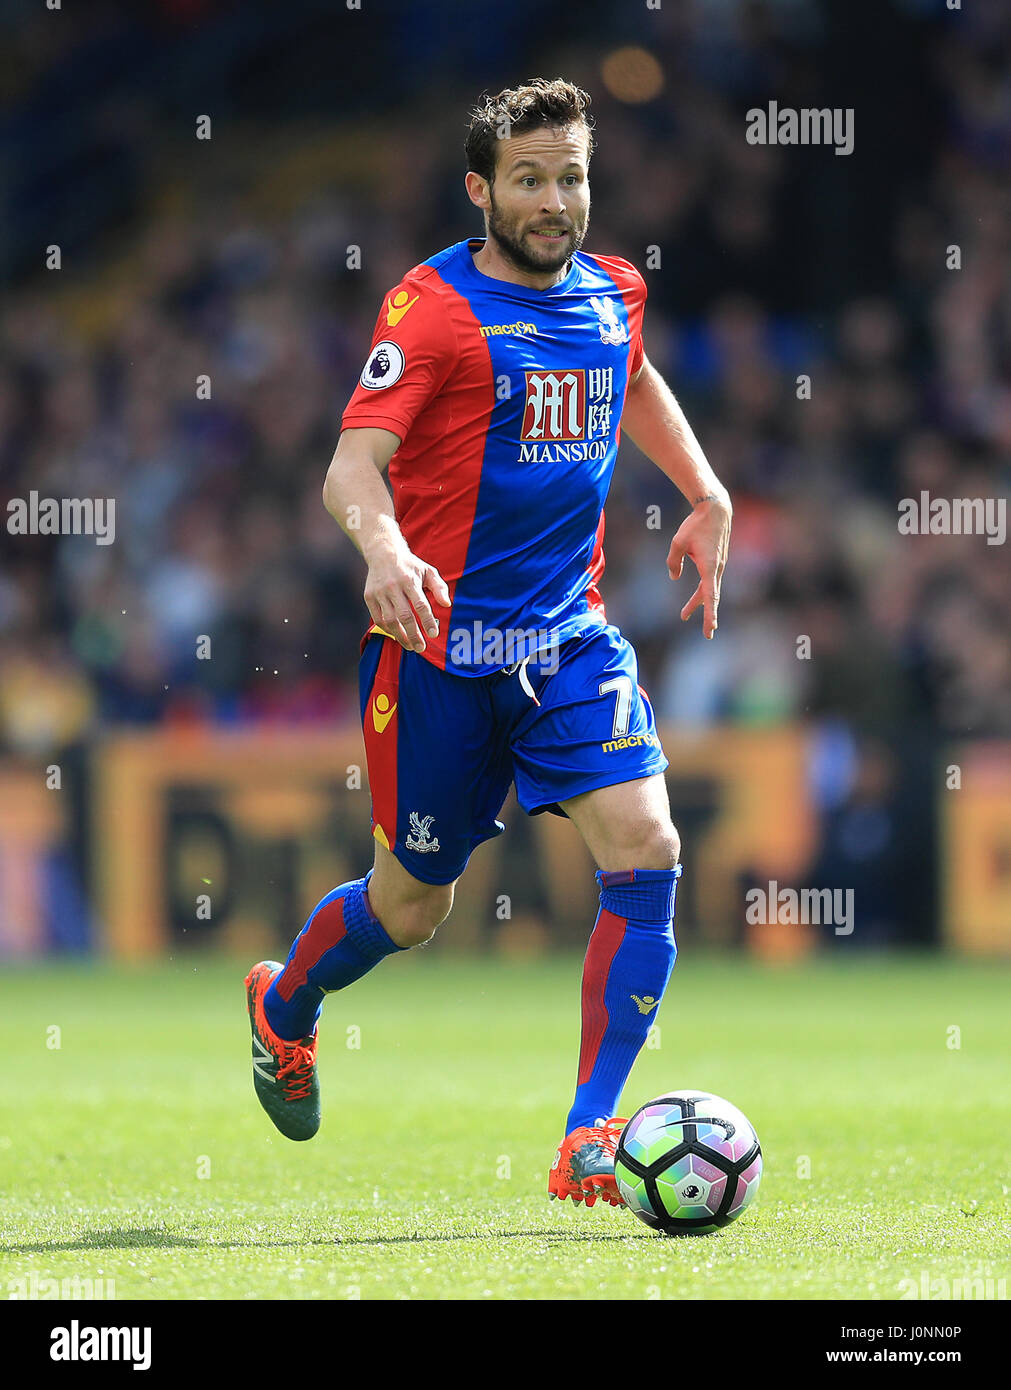 Crystal Palace s Yohan Cabaye during the Premier League match at